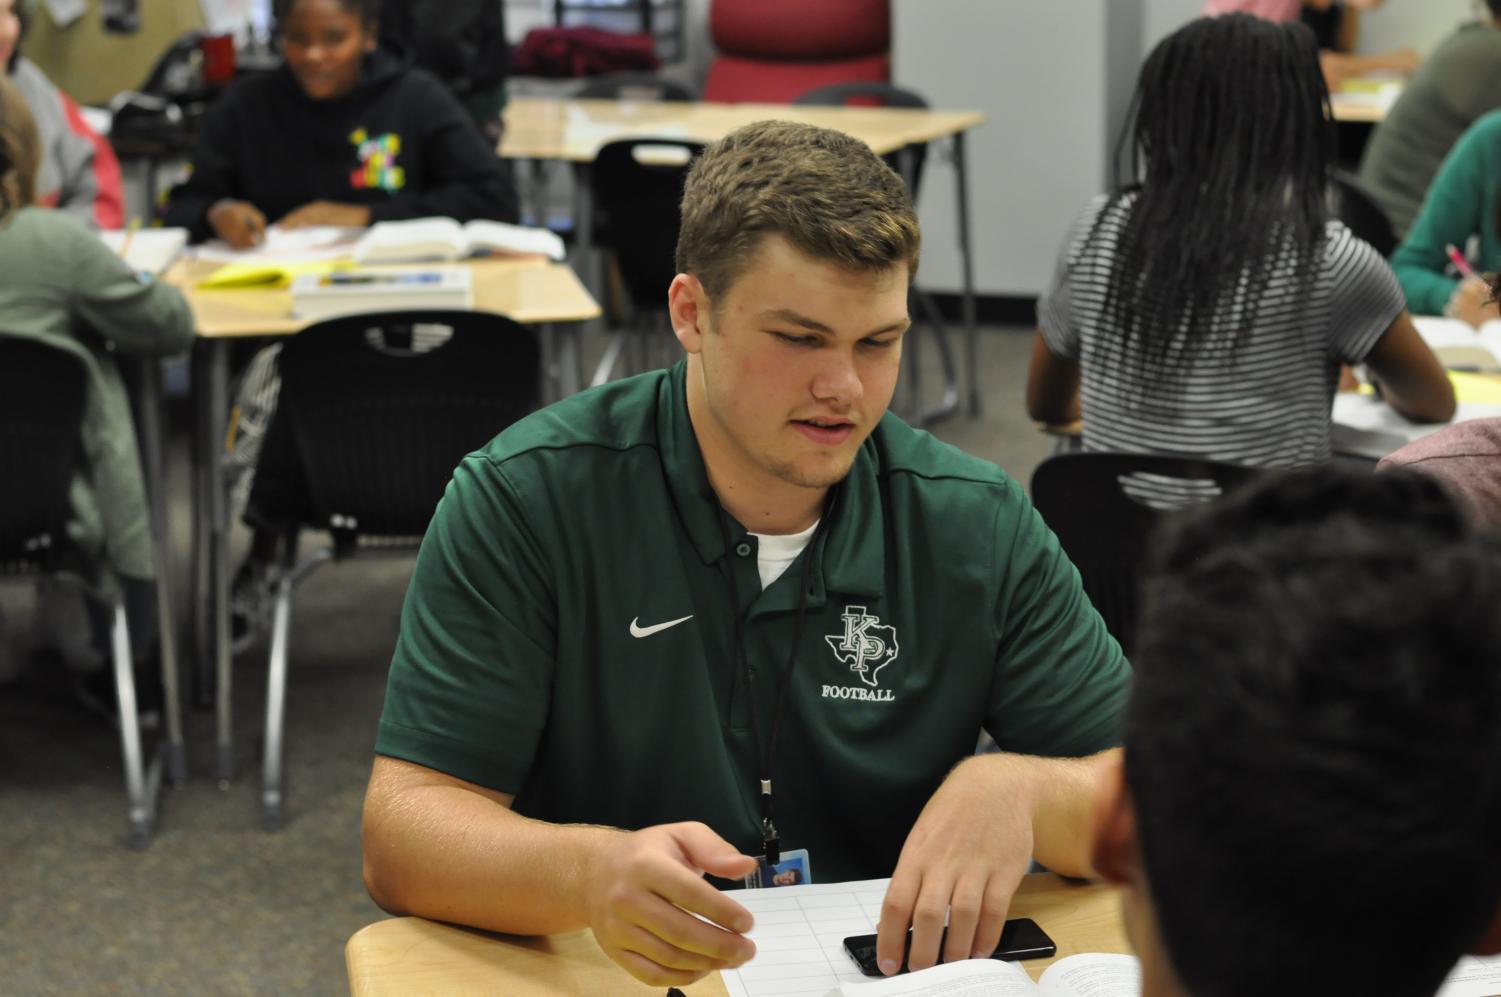 Junior Ronan Keeler works on a group project in English III. After transferring from St. Martha, Keeler has found his groove in the classroom and on the field.